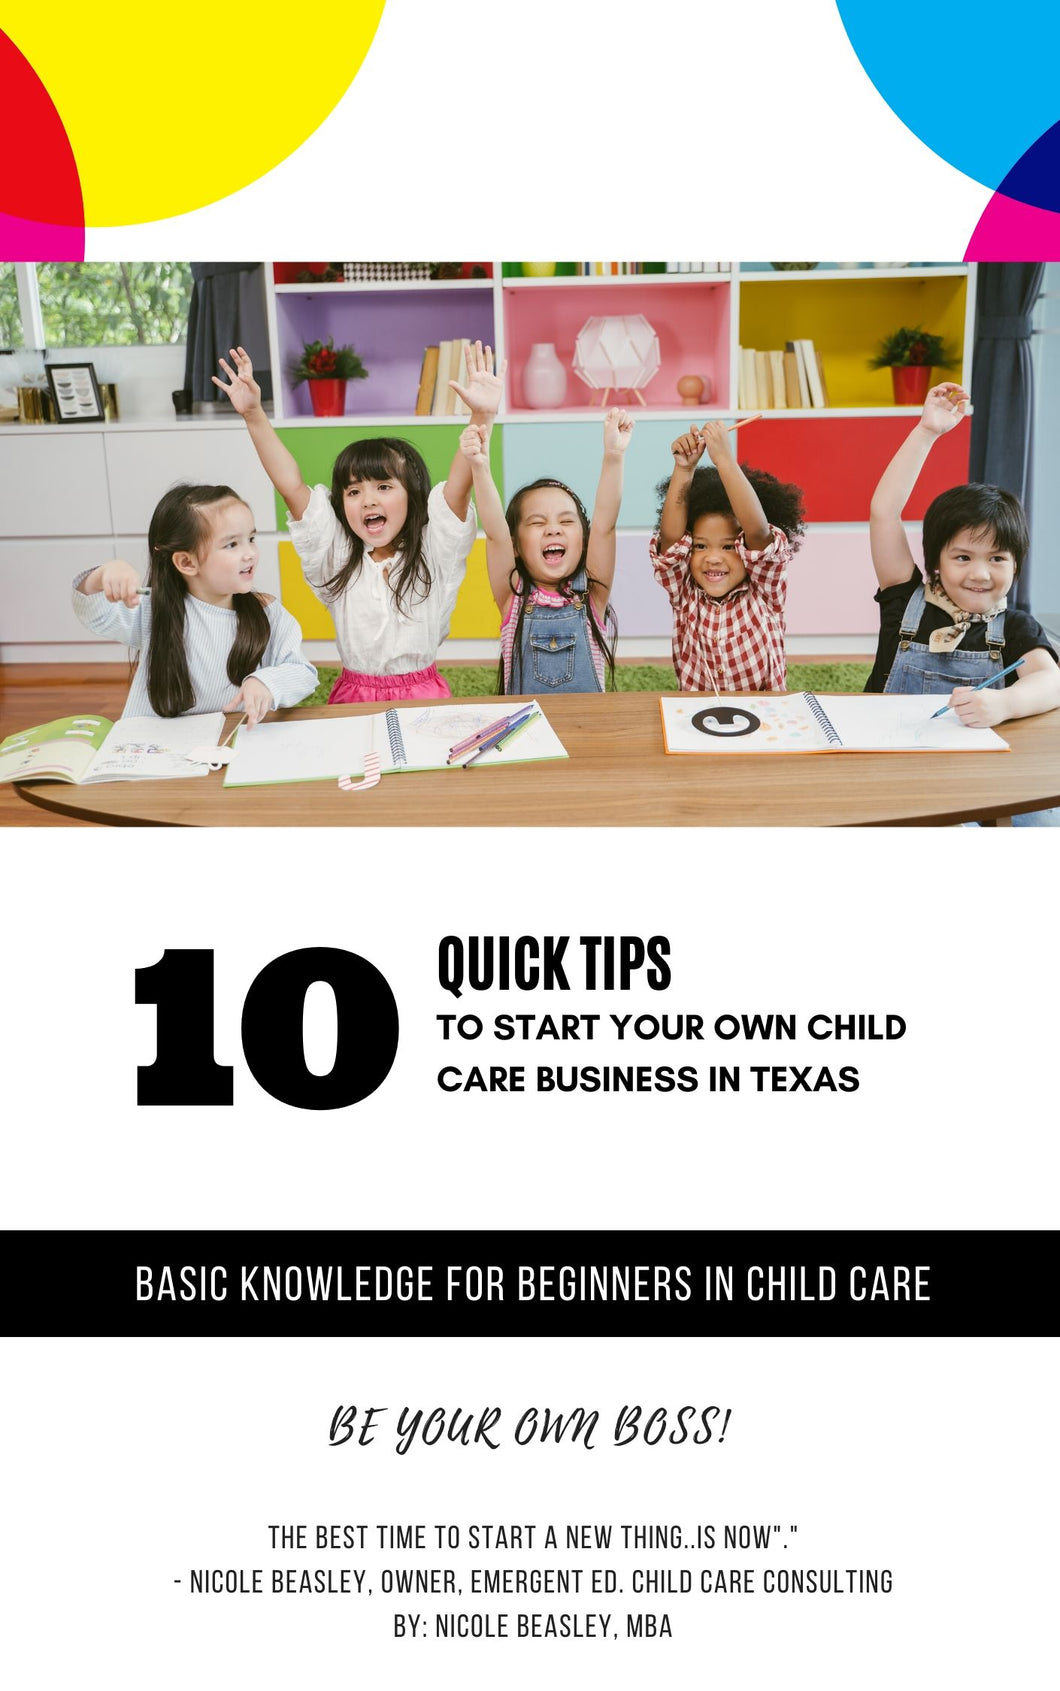 10 Quick Tips to Starting Your Own Child Care Business - FREE Download!